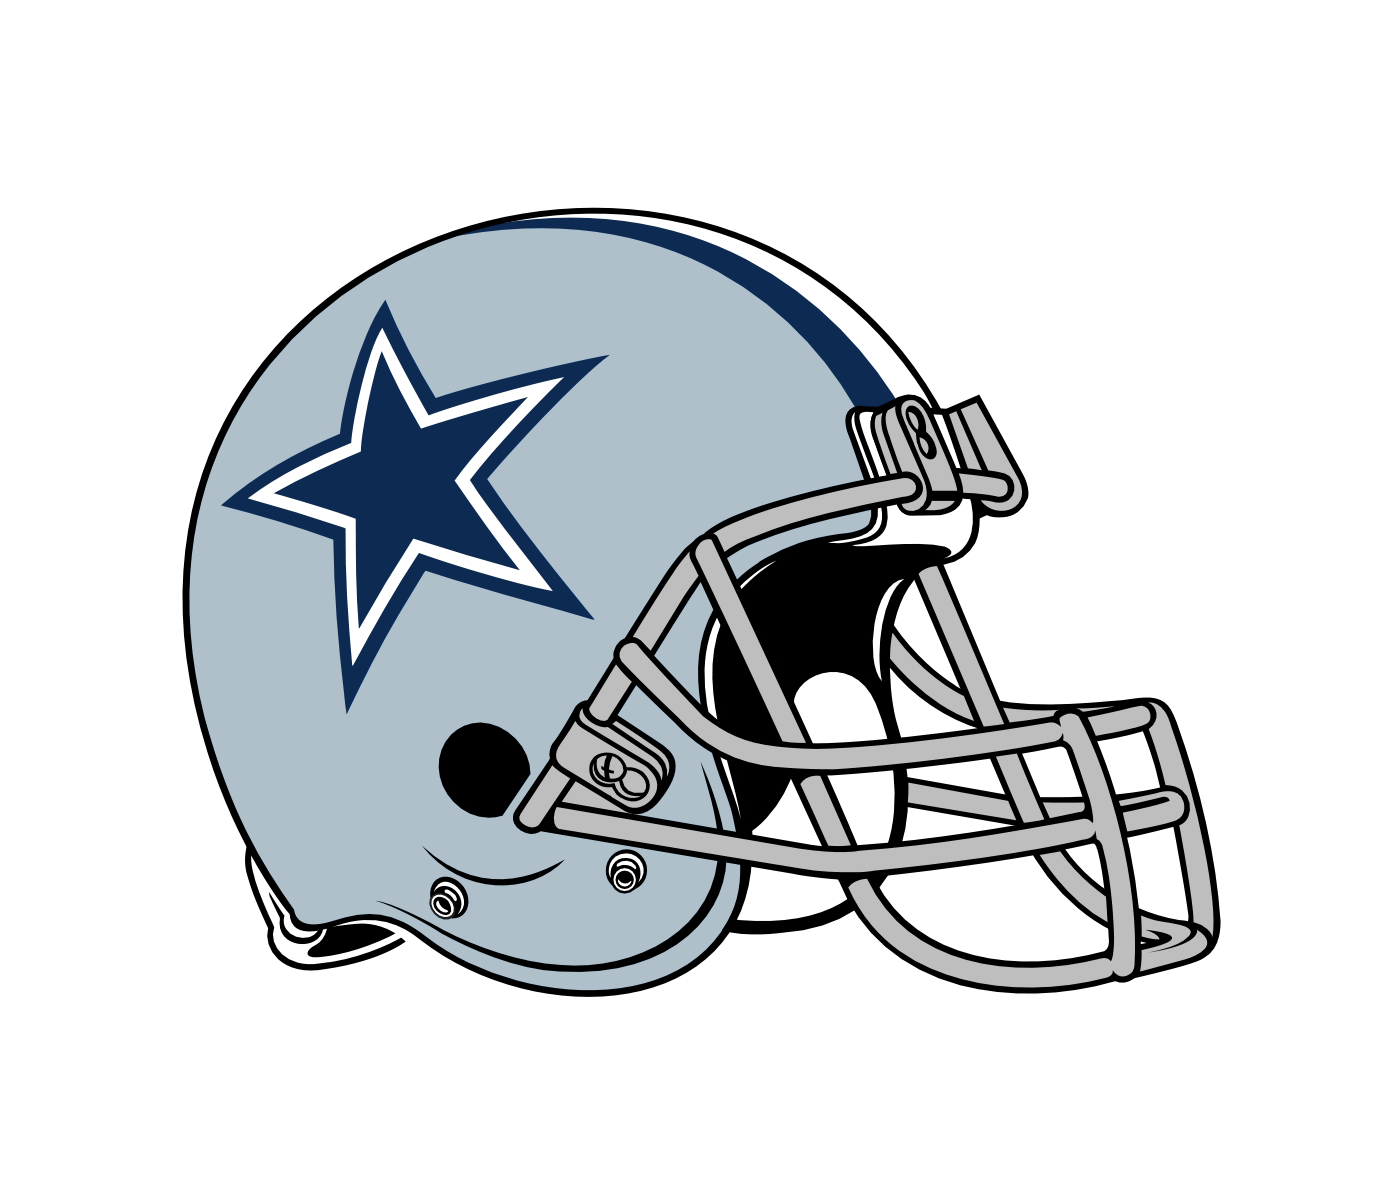 Dallas cowboys helmet clipart at free for personal png